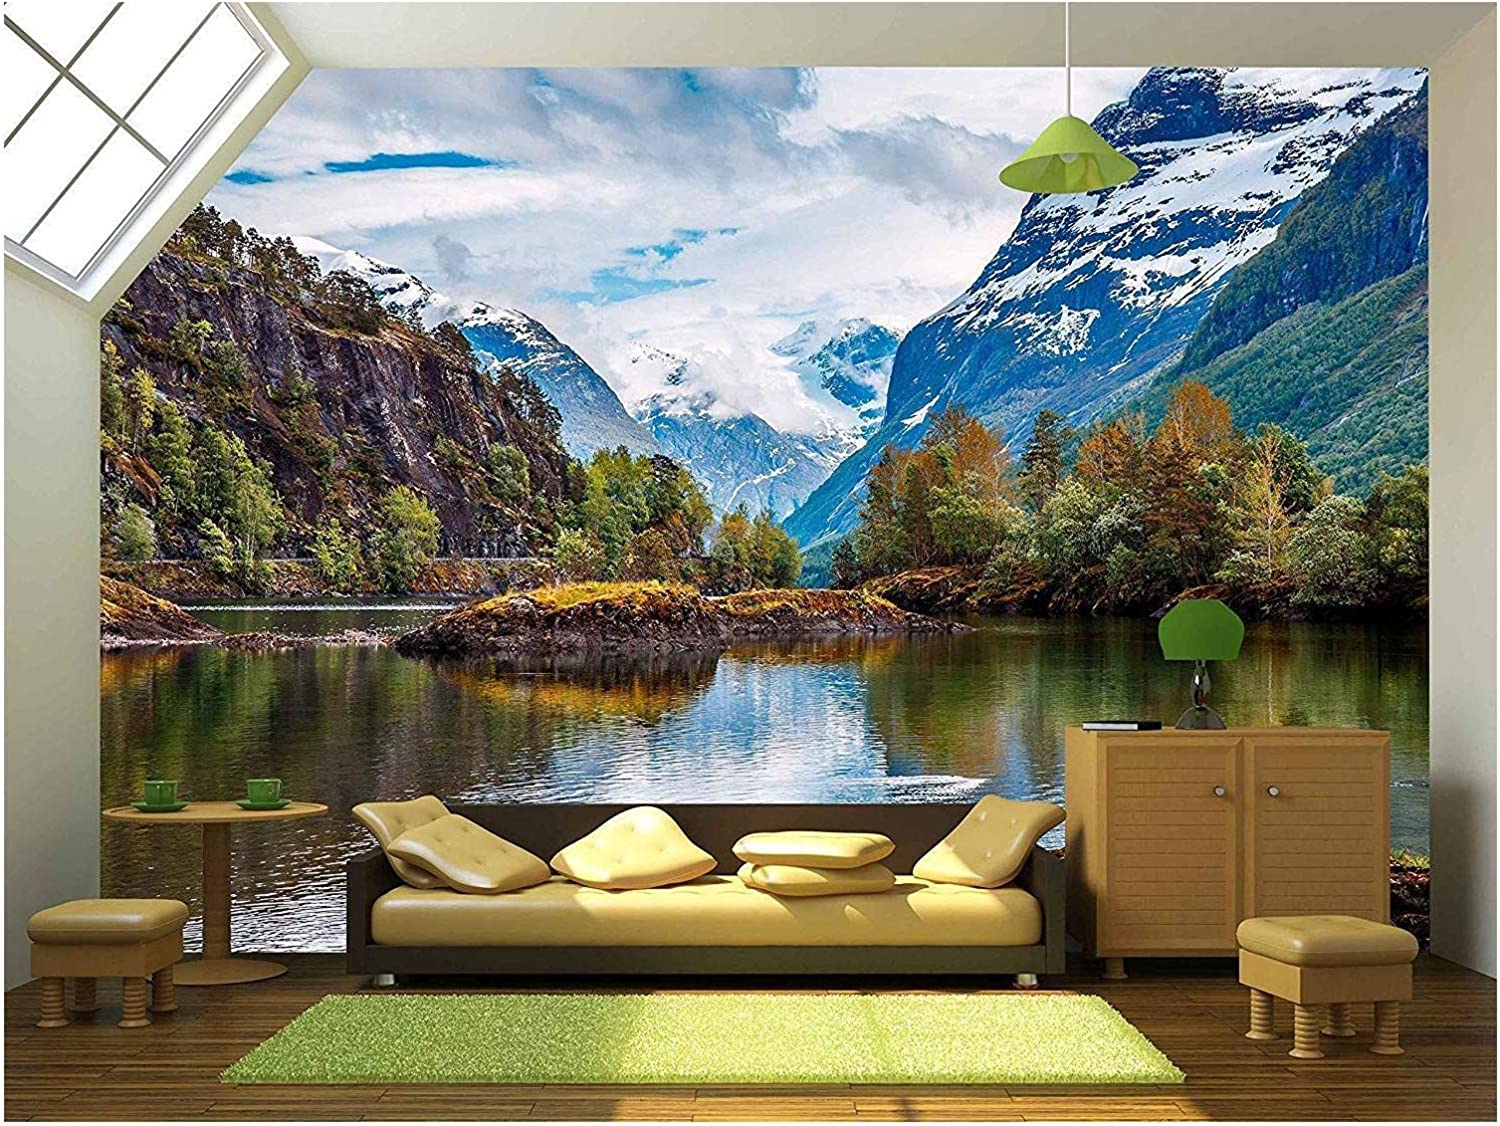 wall26 - Beautiful Nature Norway Natural Landscape. - Removable Wall Mural | Self-Adhesive Large Wallpaper - 66x96 inches